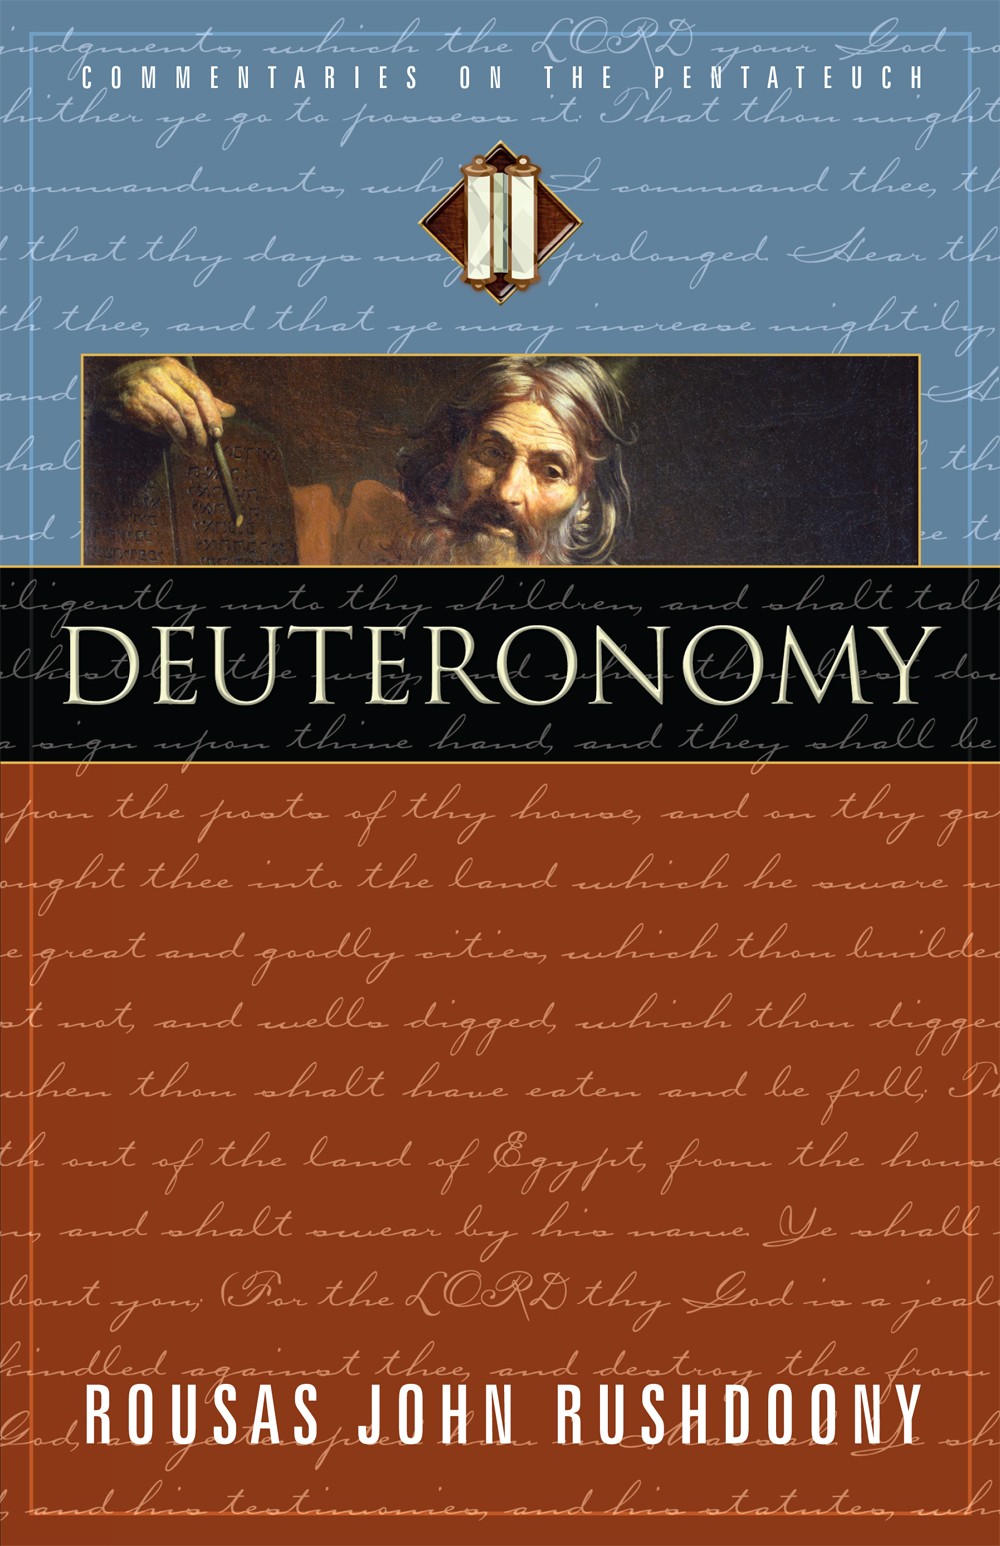 Deuteronomy: Volume V of Commentaries on the Pentateuch